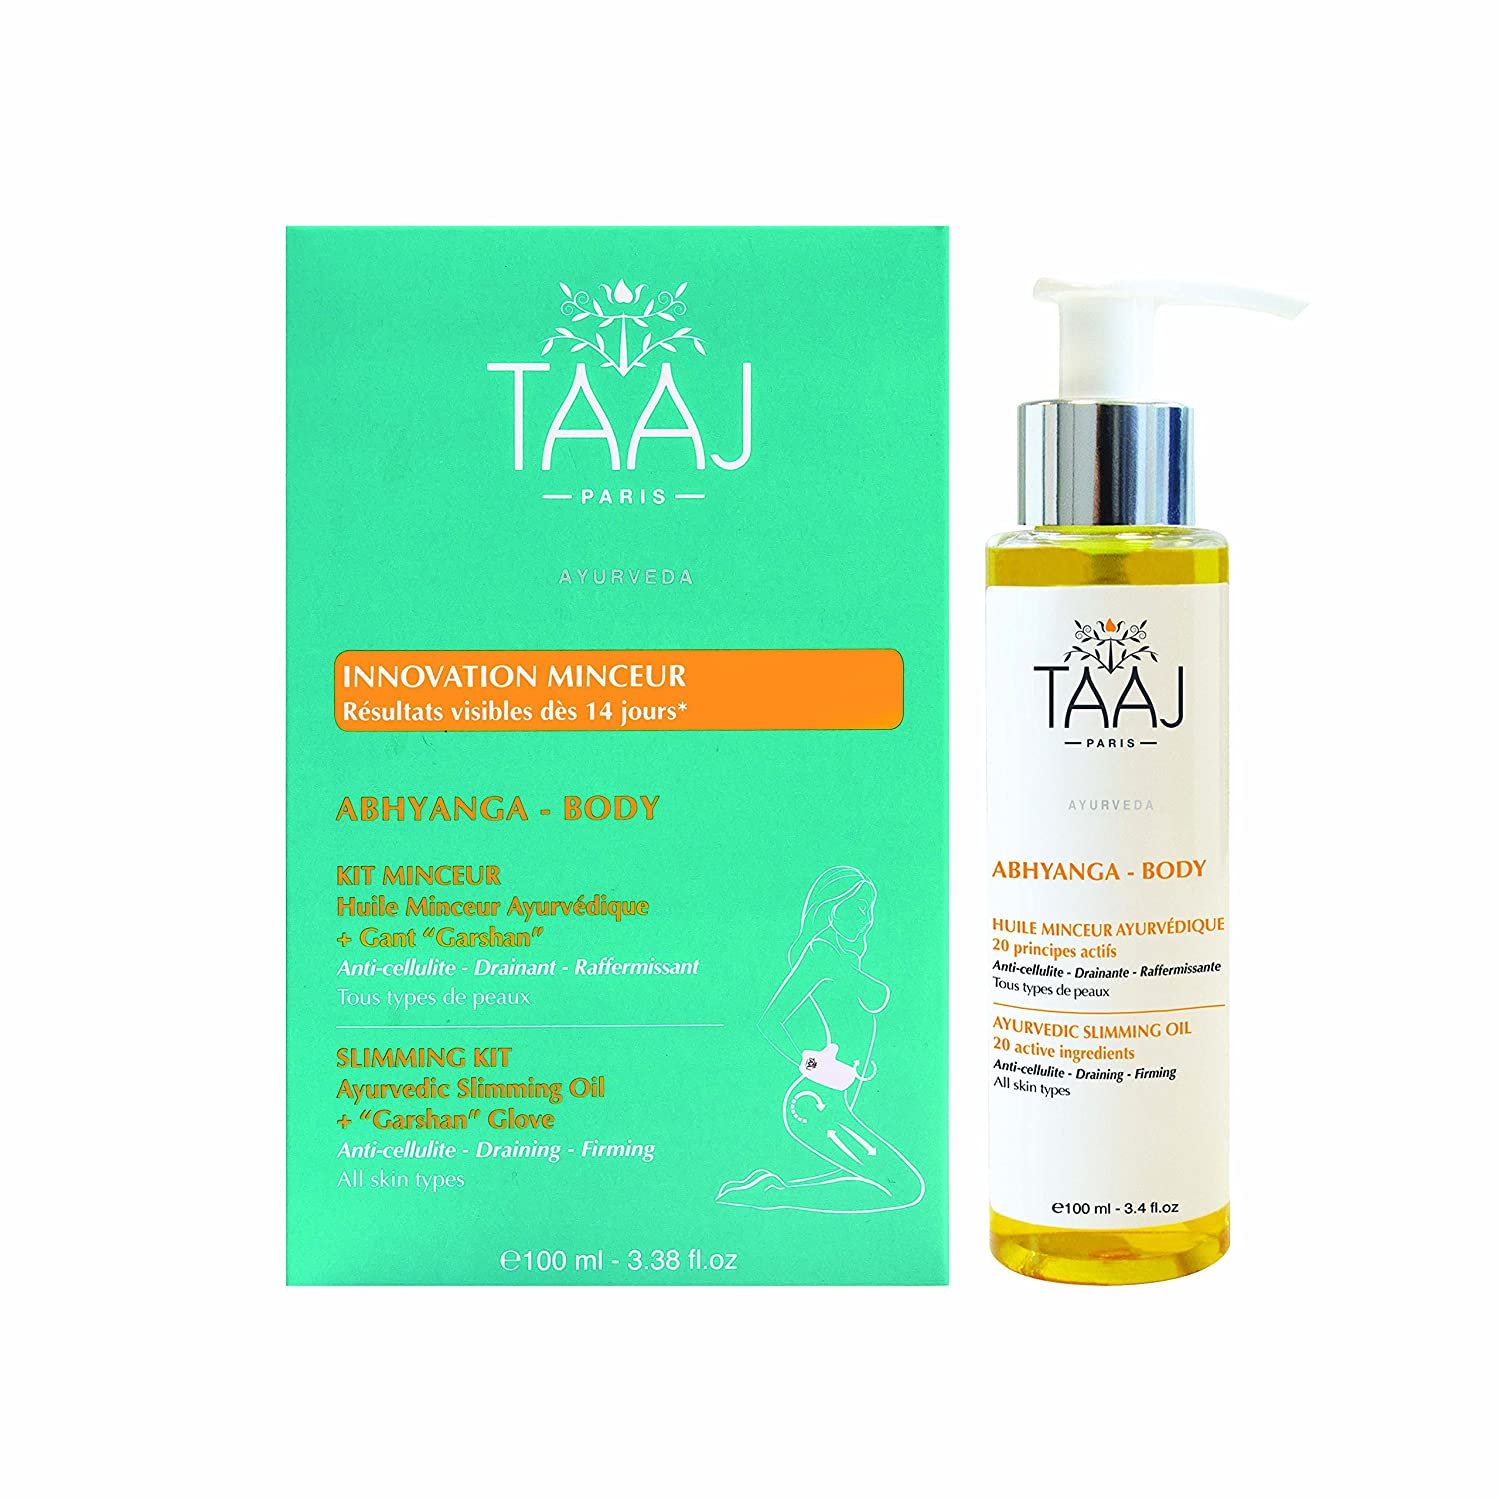 Taaj Abhyanga Slimming Kit Ayurvedic Slimming Oil 100ml + Garshan Glove